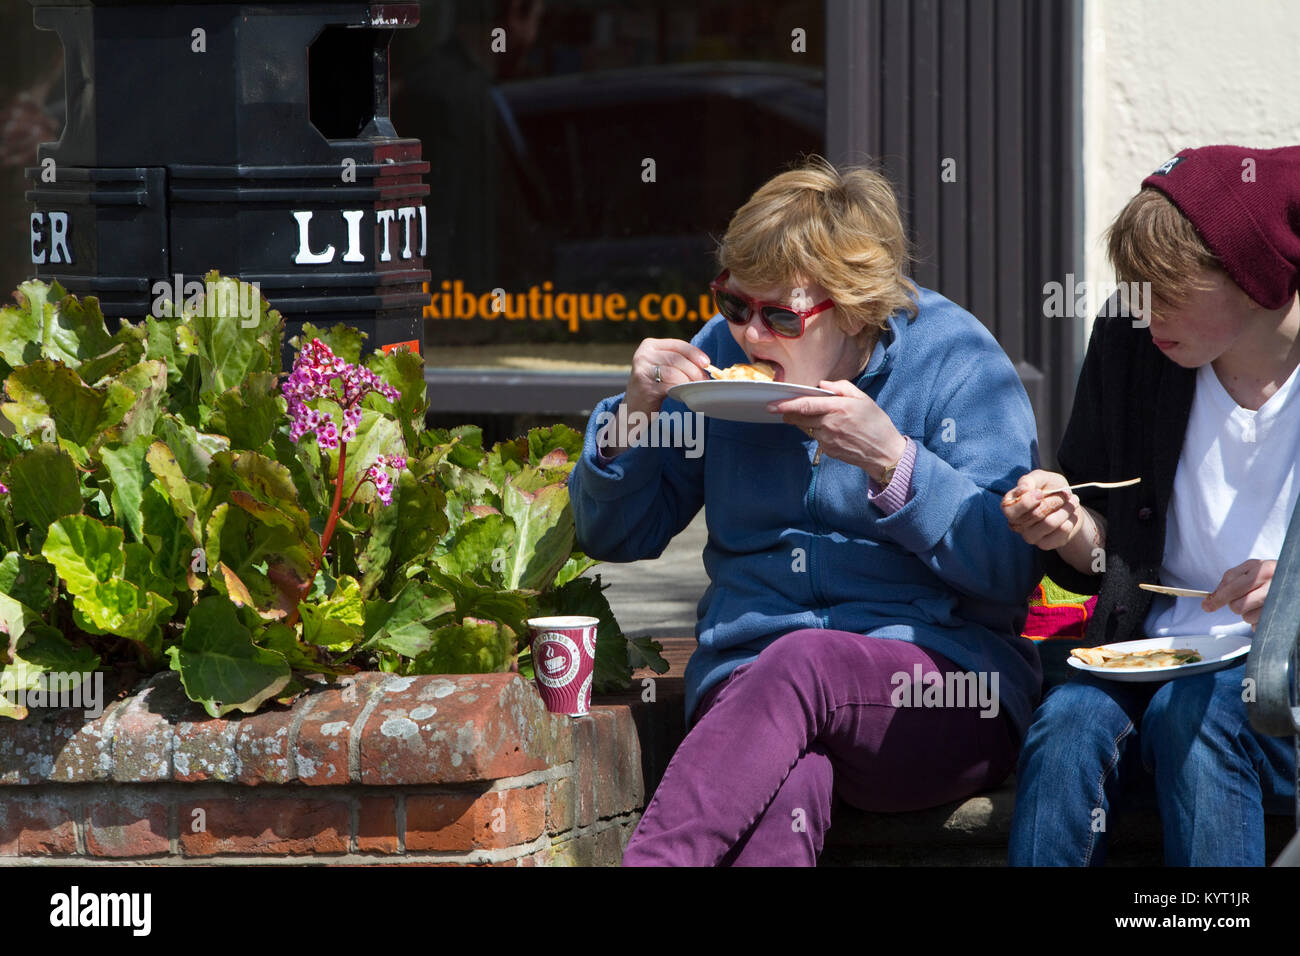 A couple outdoors sit on steps eating pancakes from paper plates - Stock Image